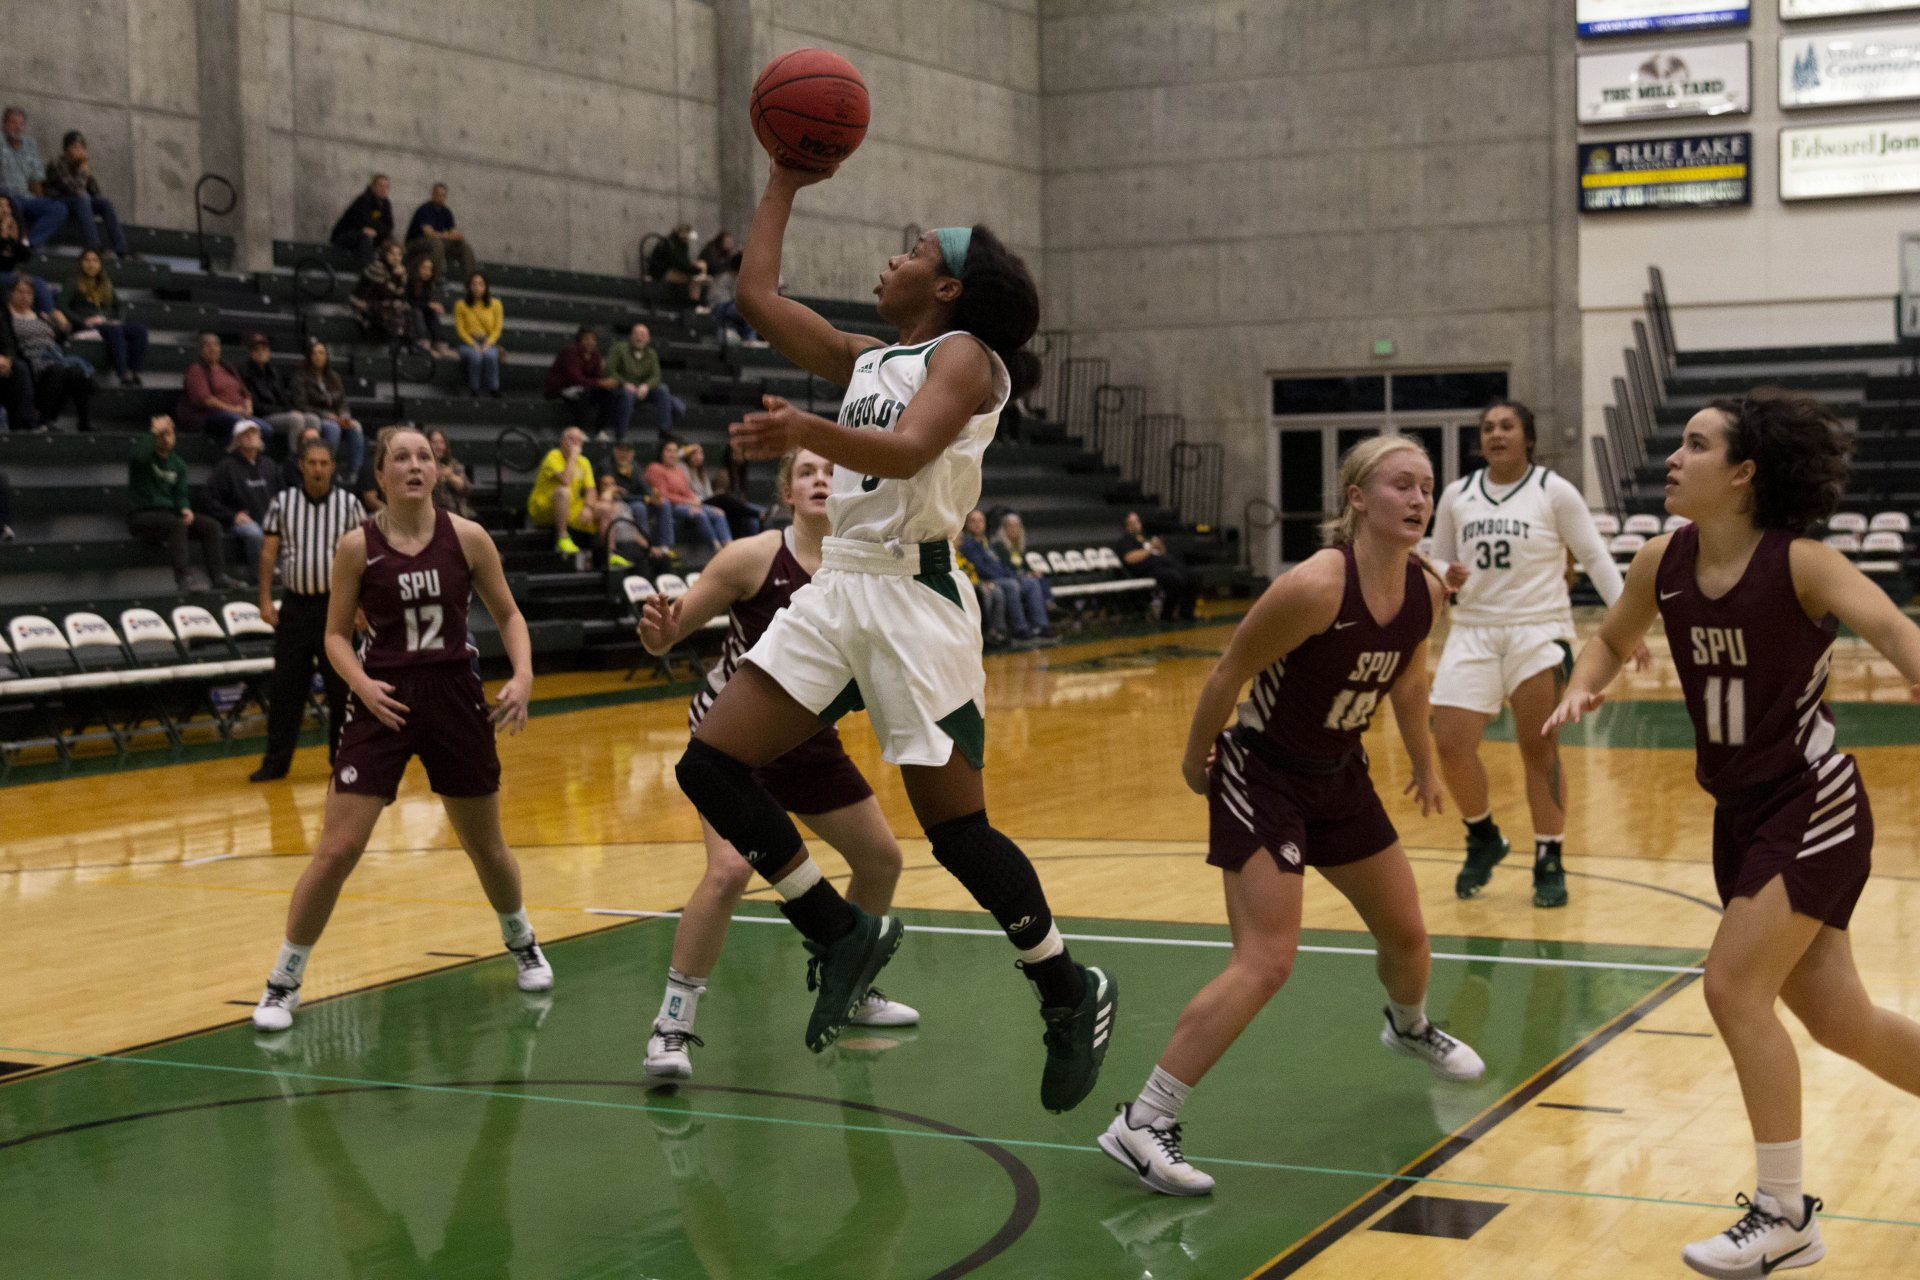 Humboldt State's Tyra Turner goes up for a layup after cutting through Seattle Pacific's defense during the first half of the game at Lumberjack Arena on Nov. 8. | Photo by Thomas Lal